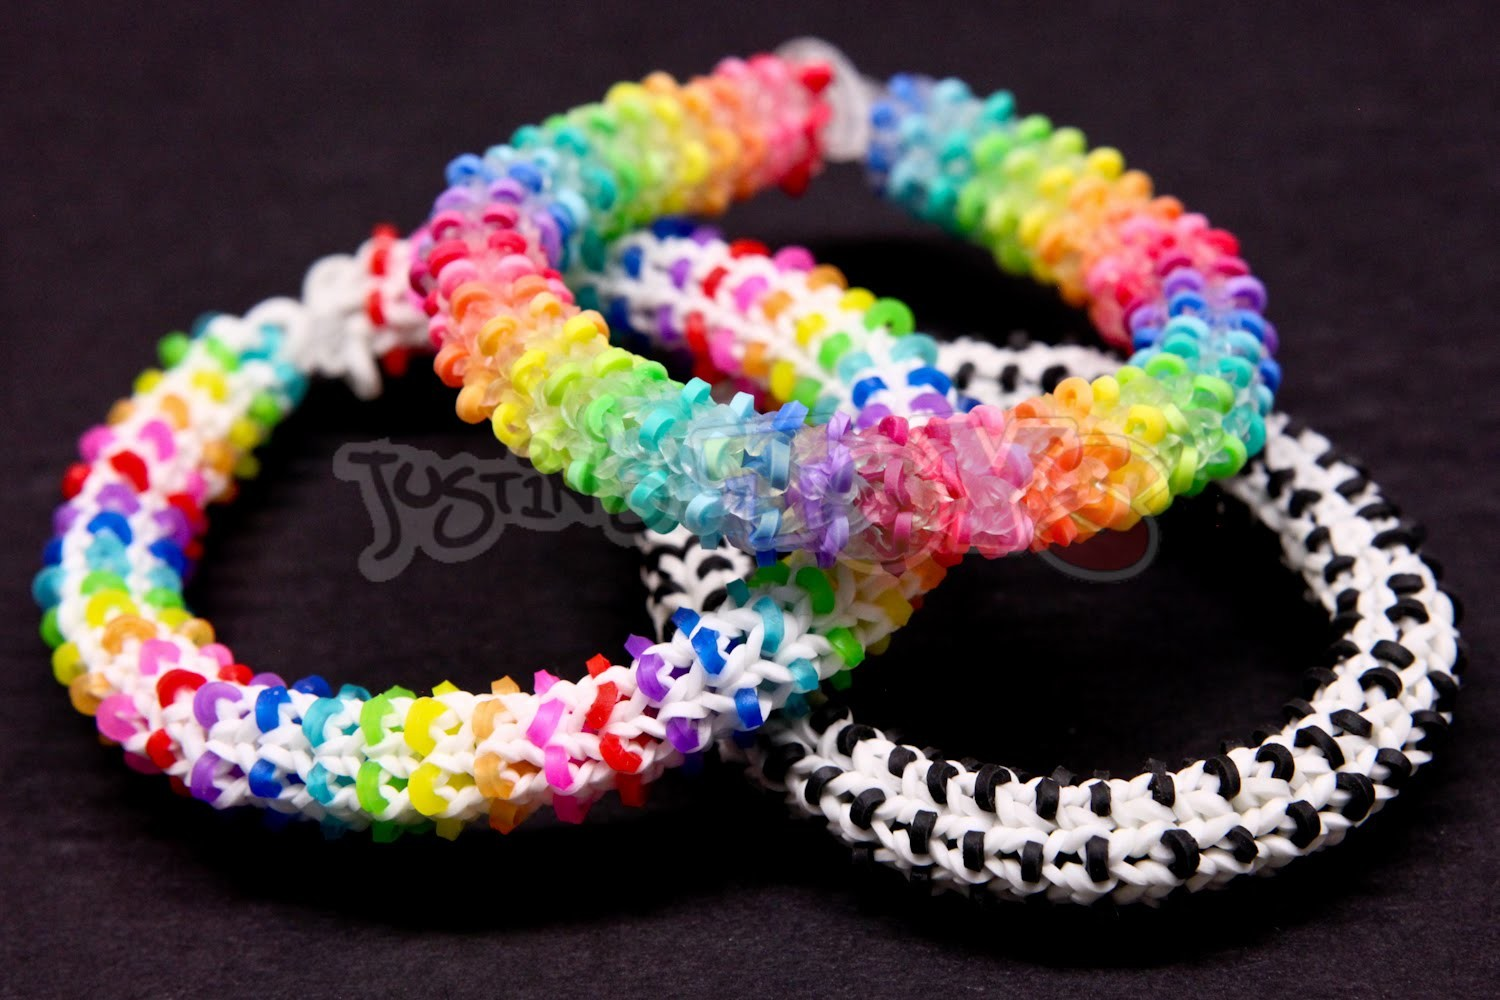 How to Make a Rainbow Loom HEXADOTS Bracelet - Switch Loop Hexafish - HARD